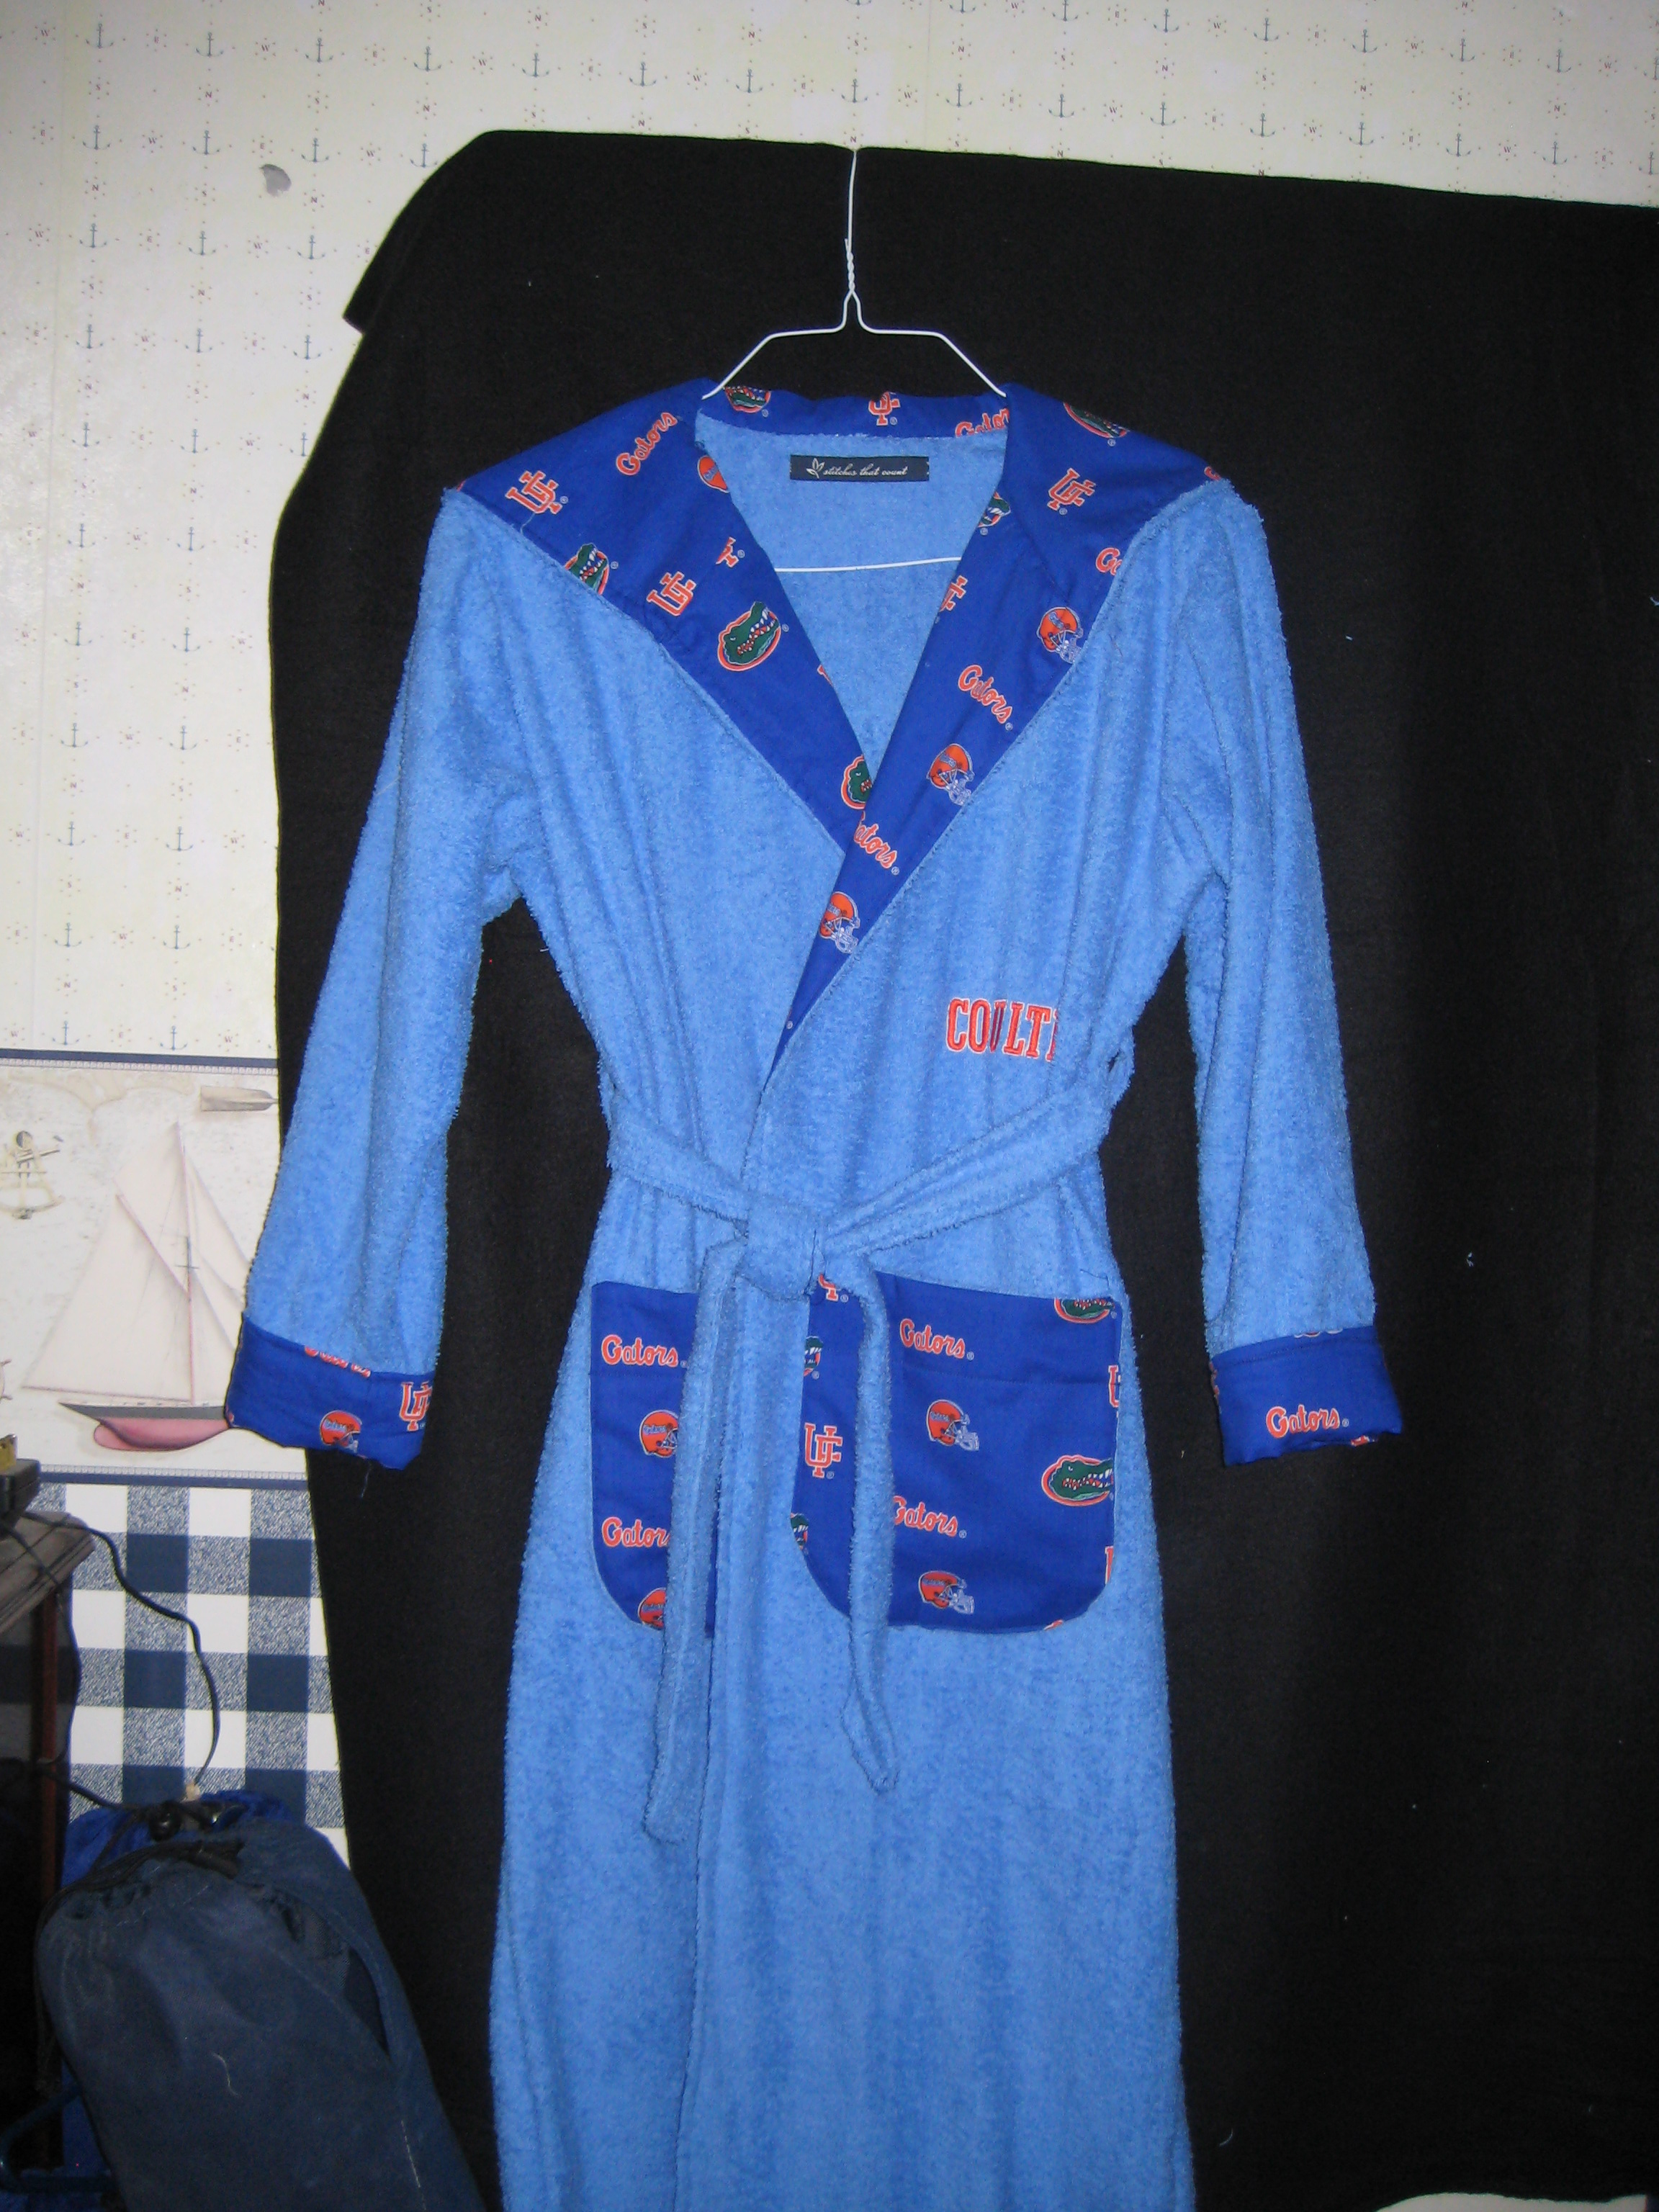 Gator bathrobe